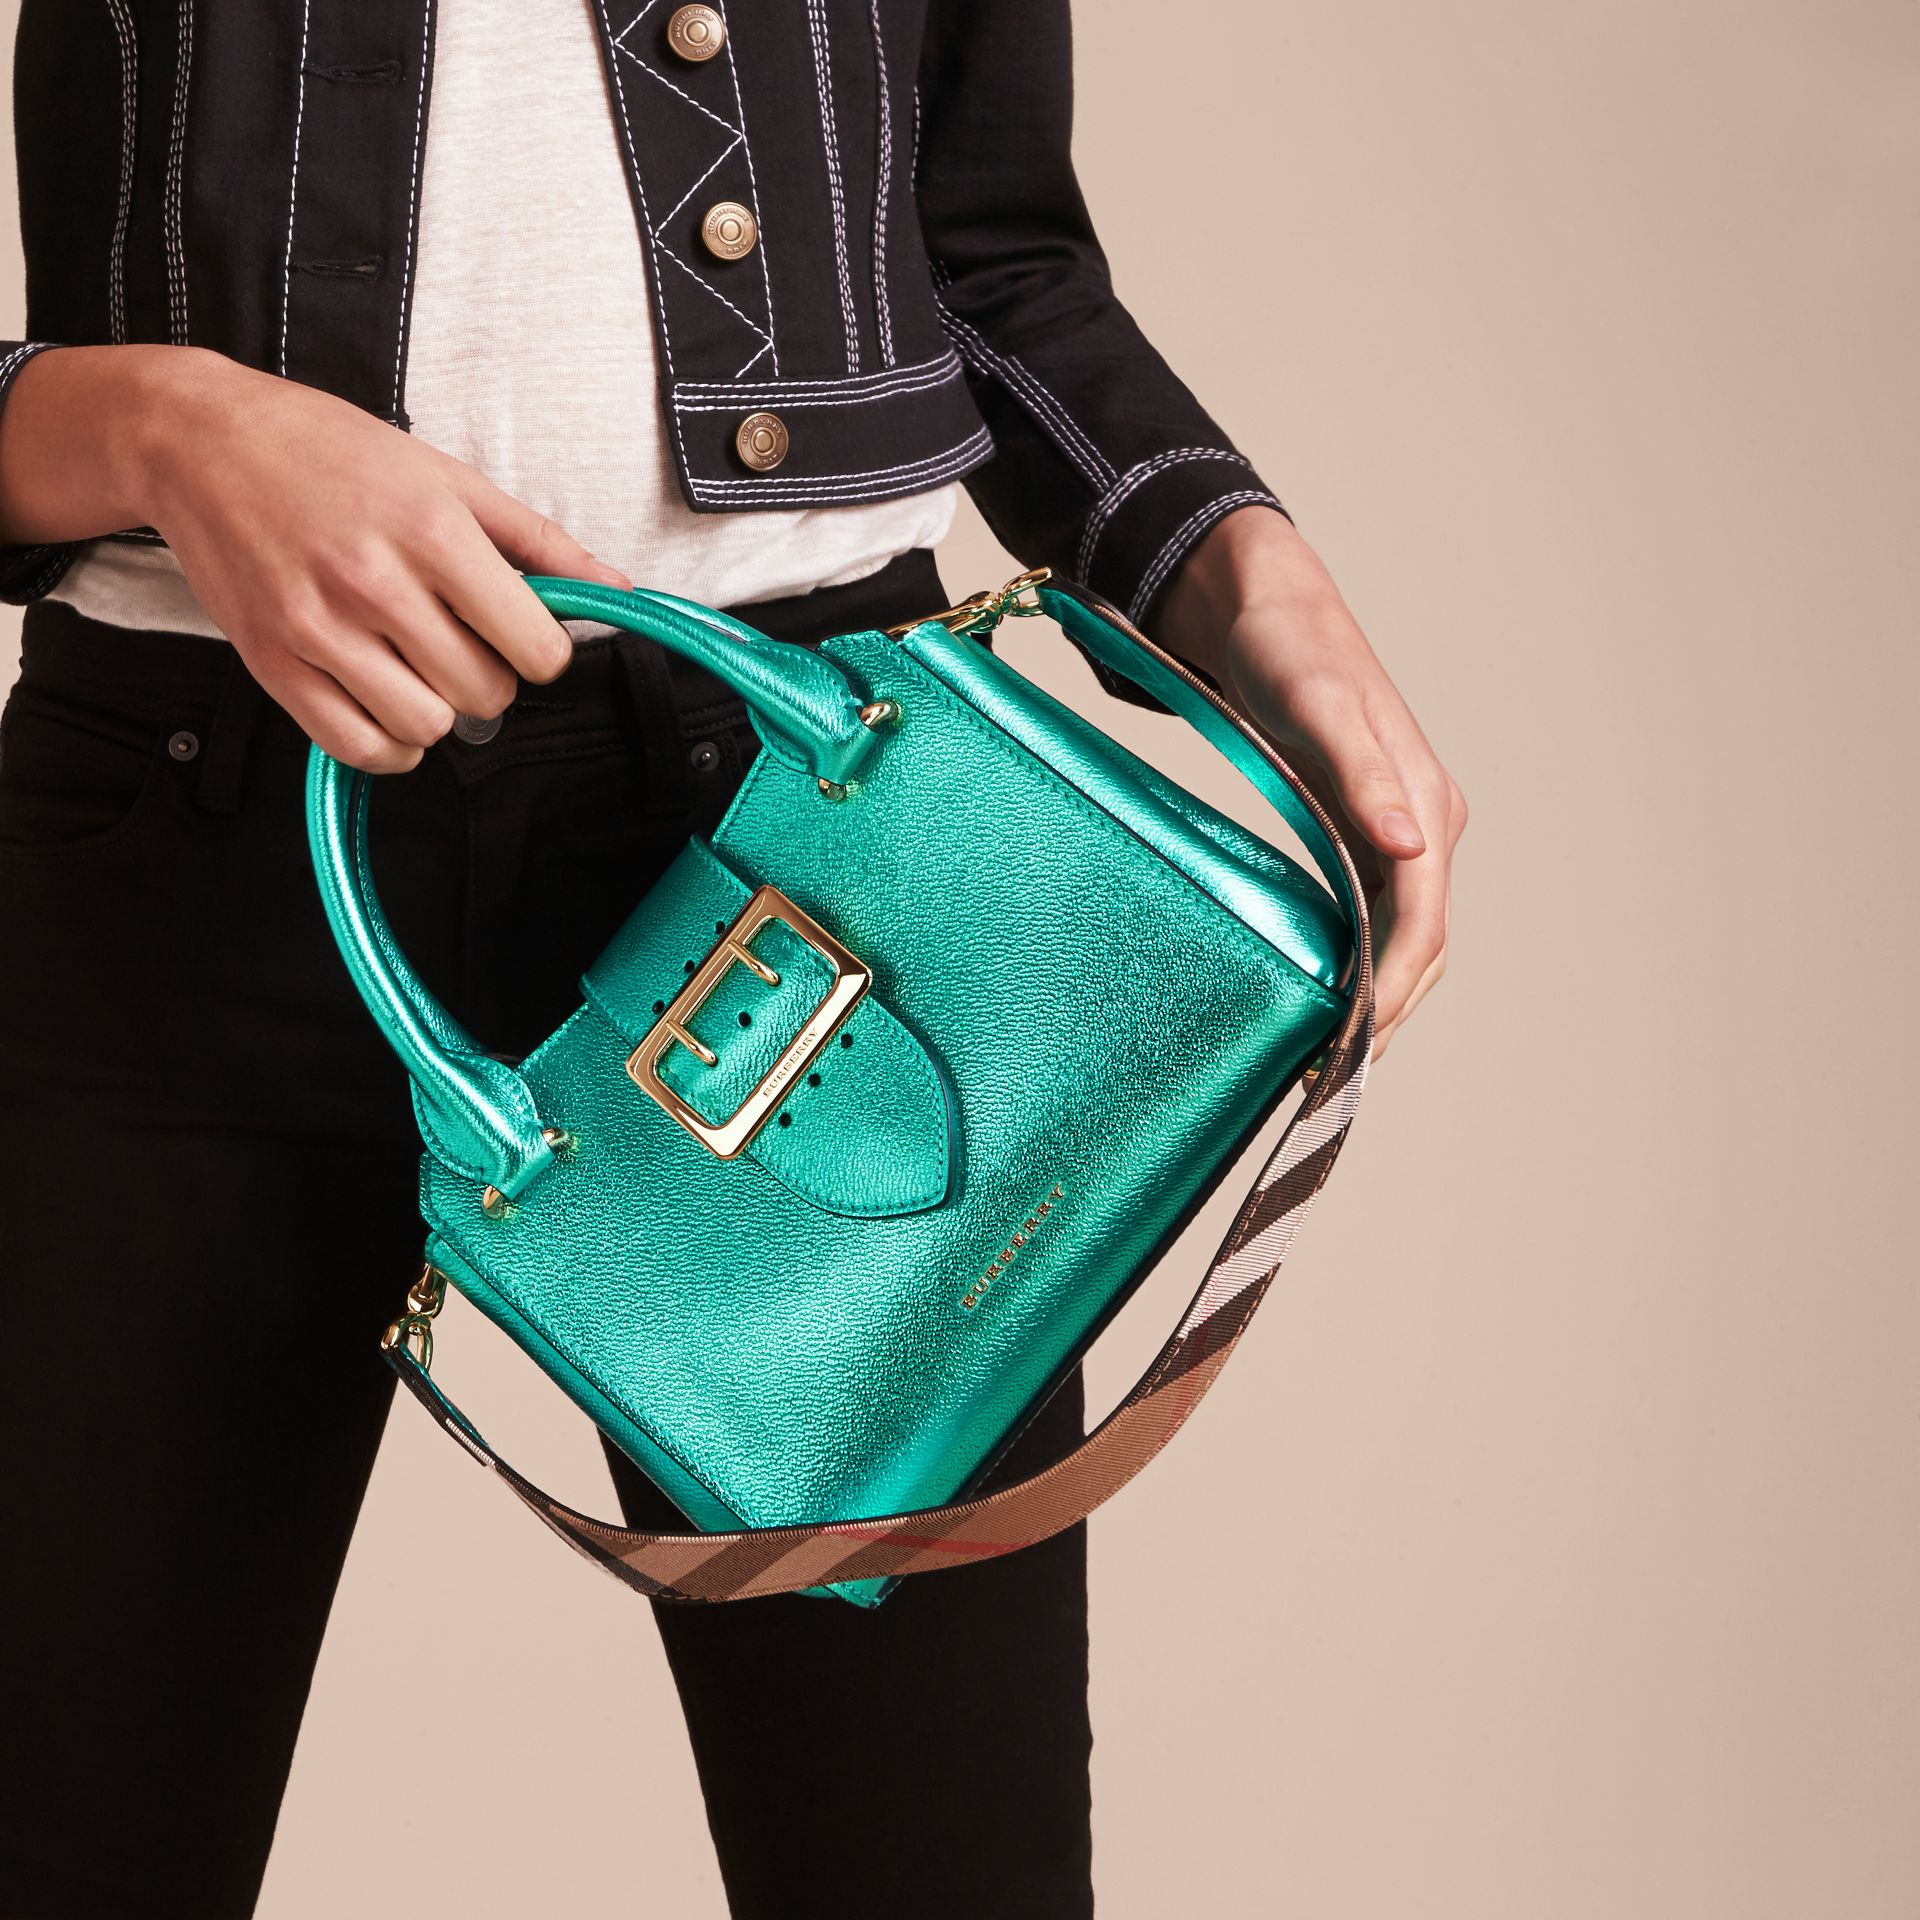 The Small Buckle Tote in Metallic Leather in Emerald - gallery image 4